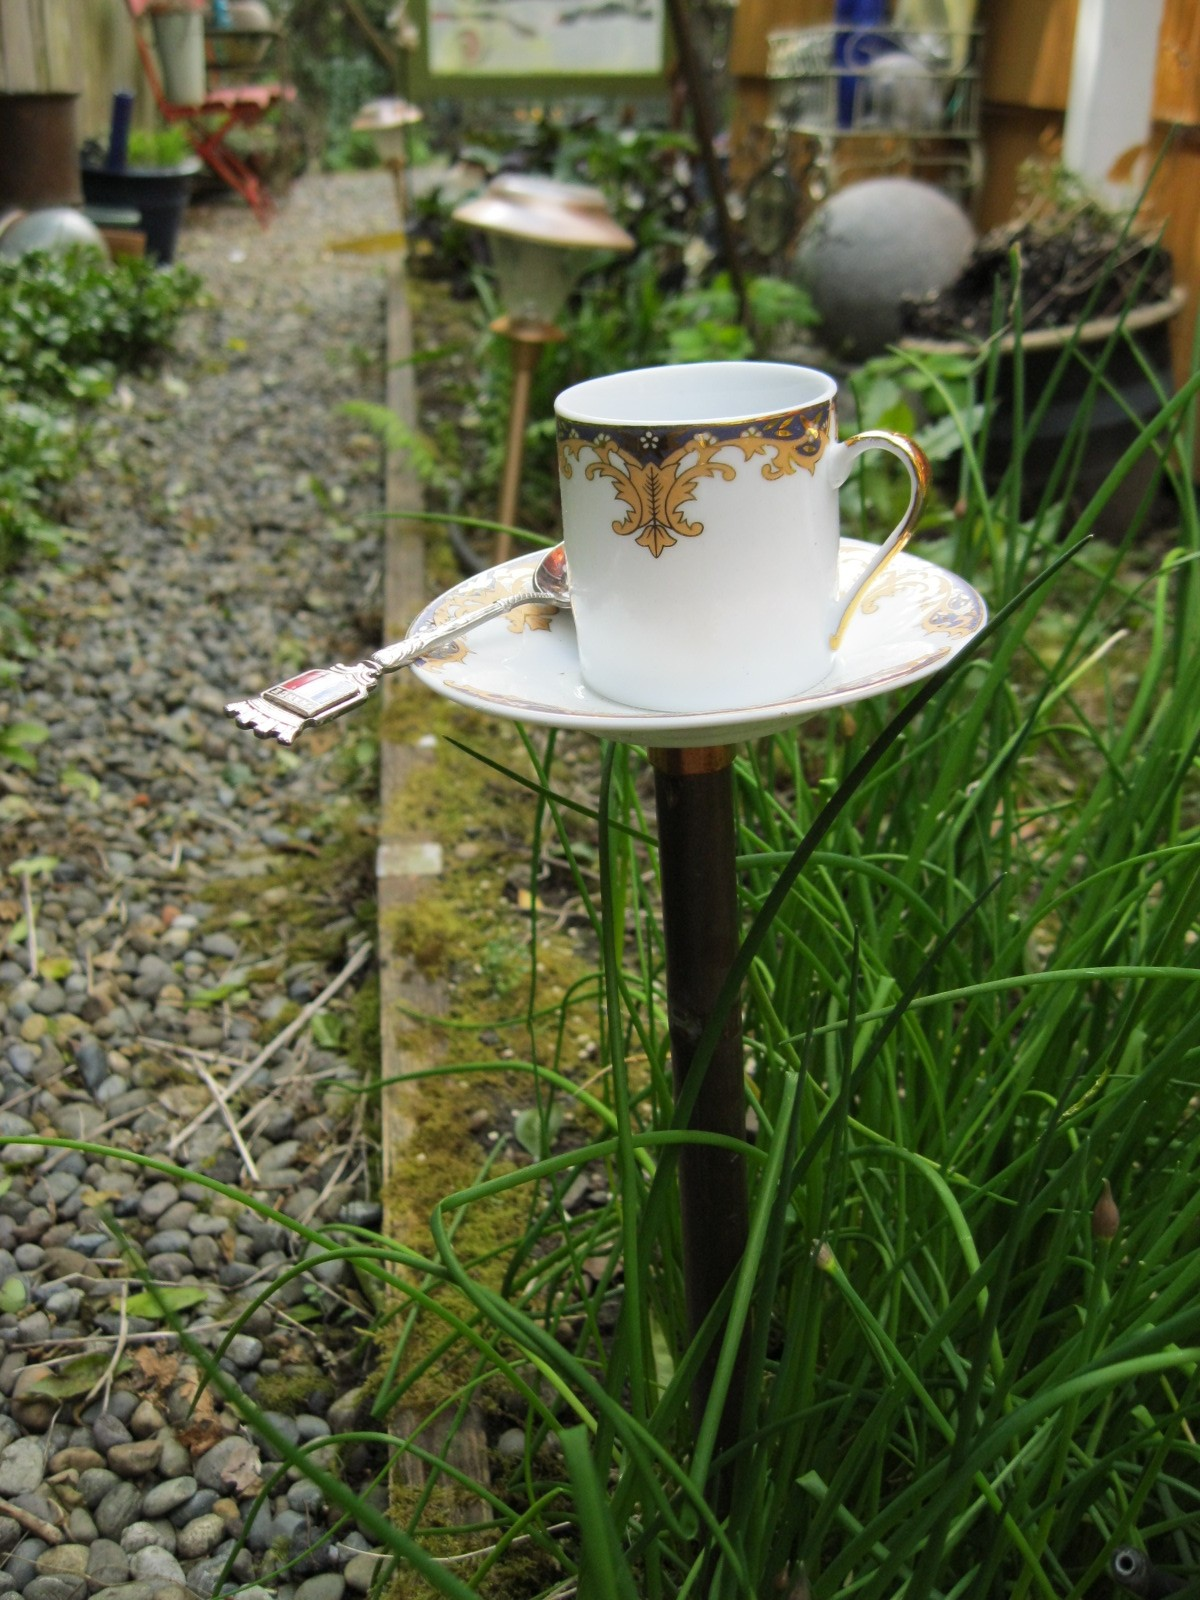 Seemly Rabbit Shares How To Make Your Own Garden Tea Lights Rabbit Shares How To Make Your Own Garden Tea Lights Artful Rabbit Make Your Own Garden Make Your Own Garden Hose garden Make Your Own Garden